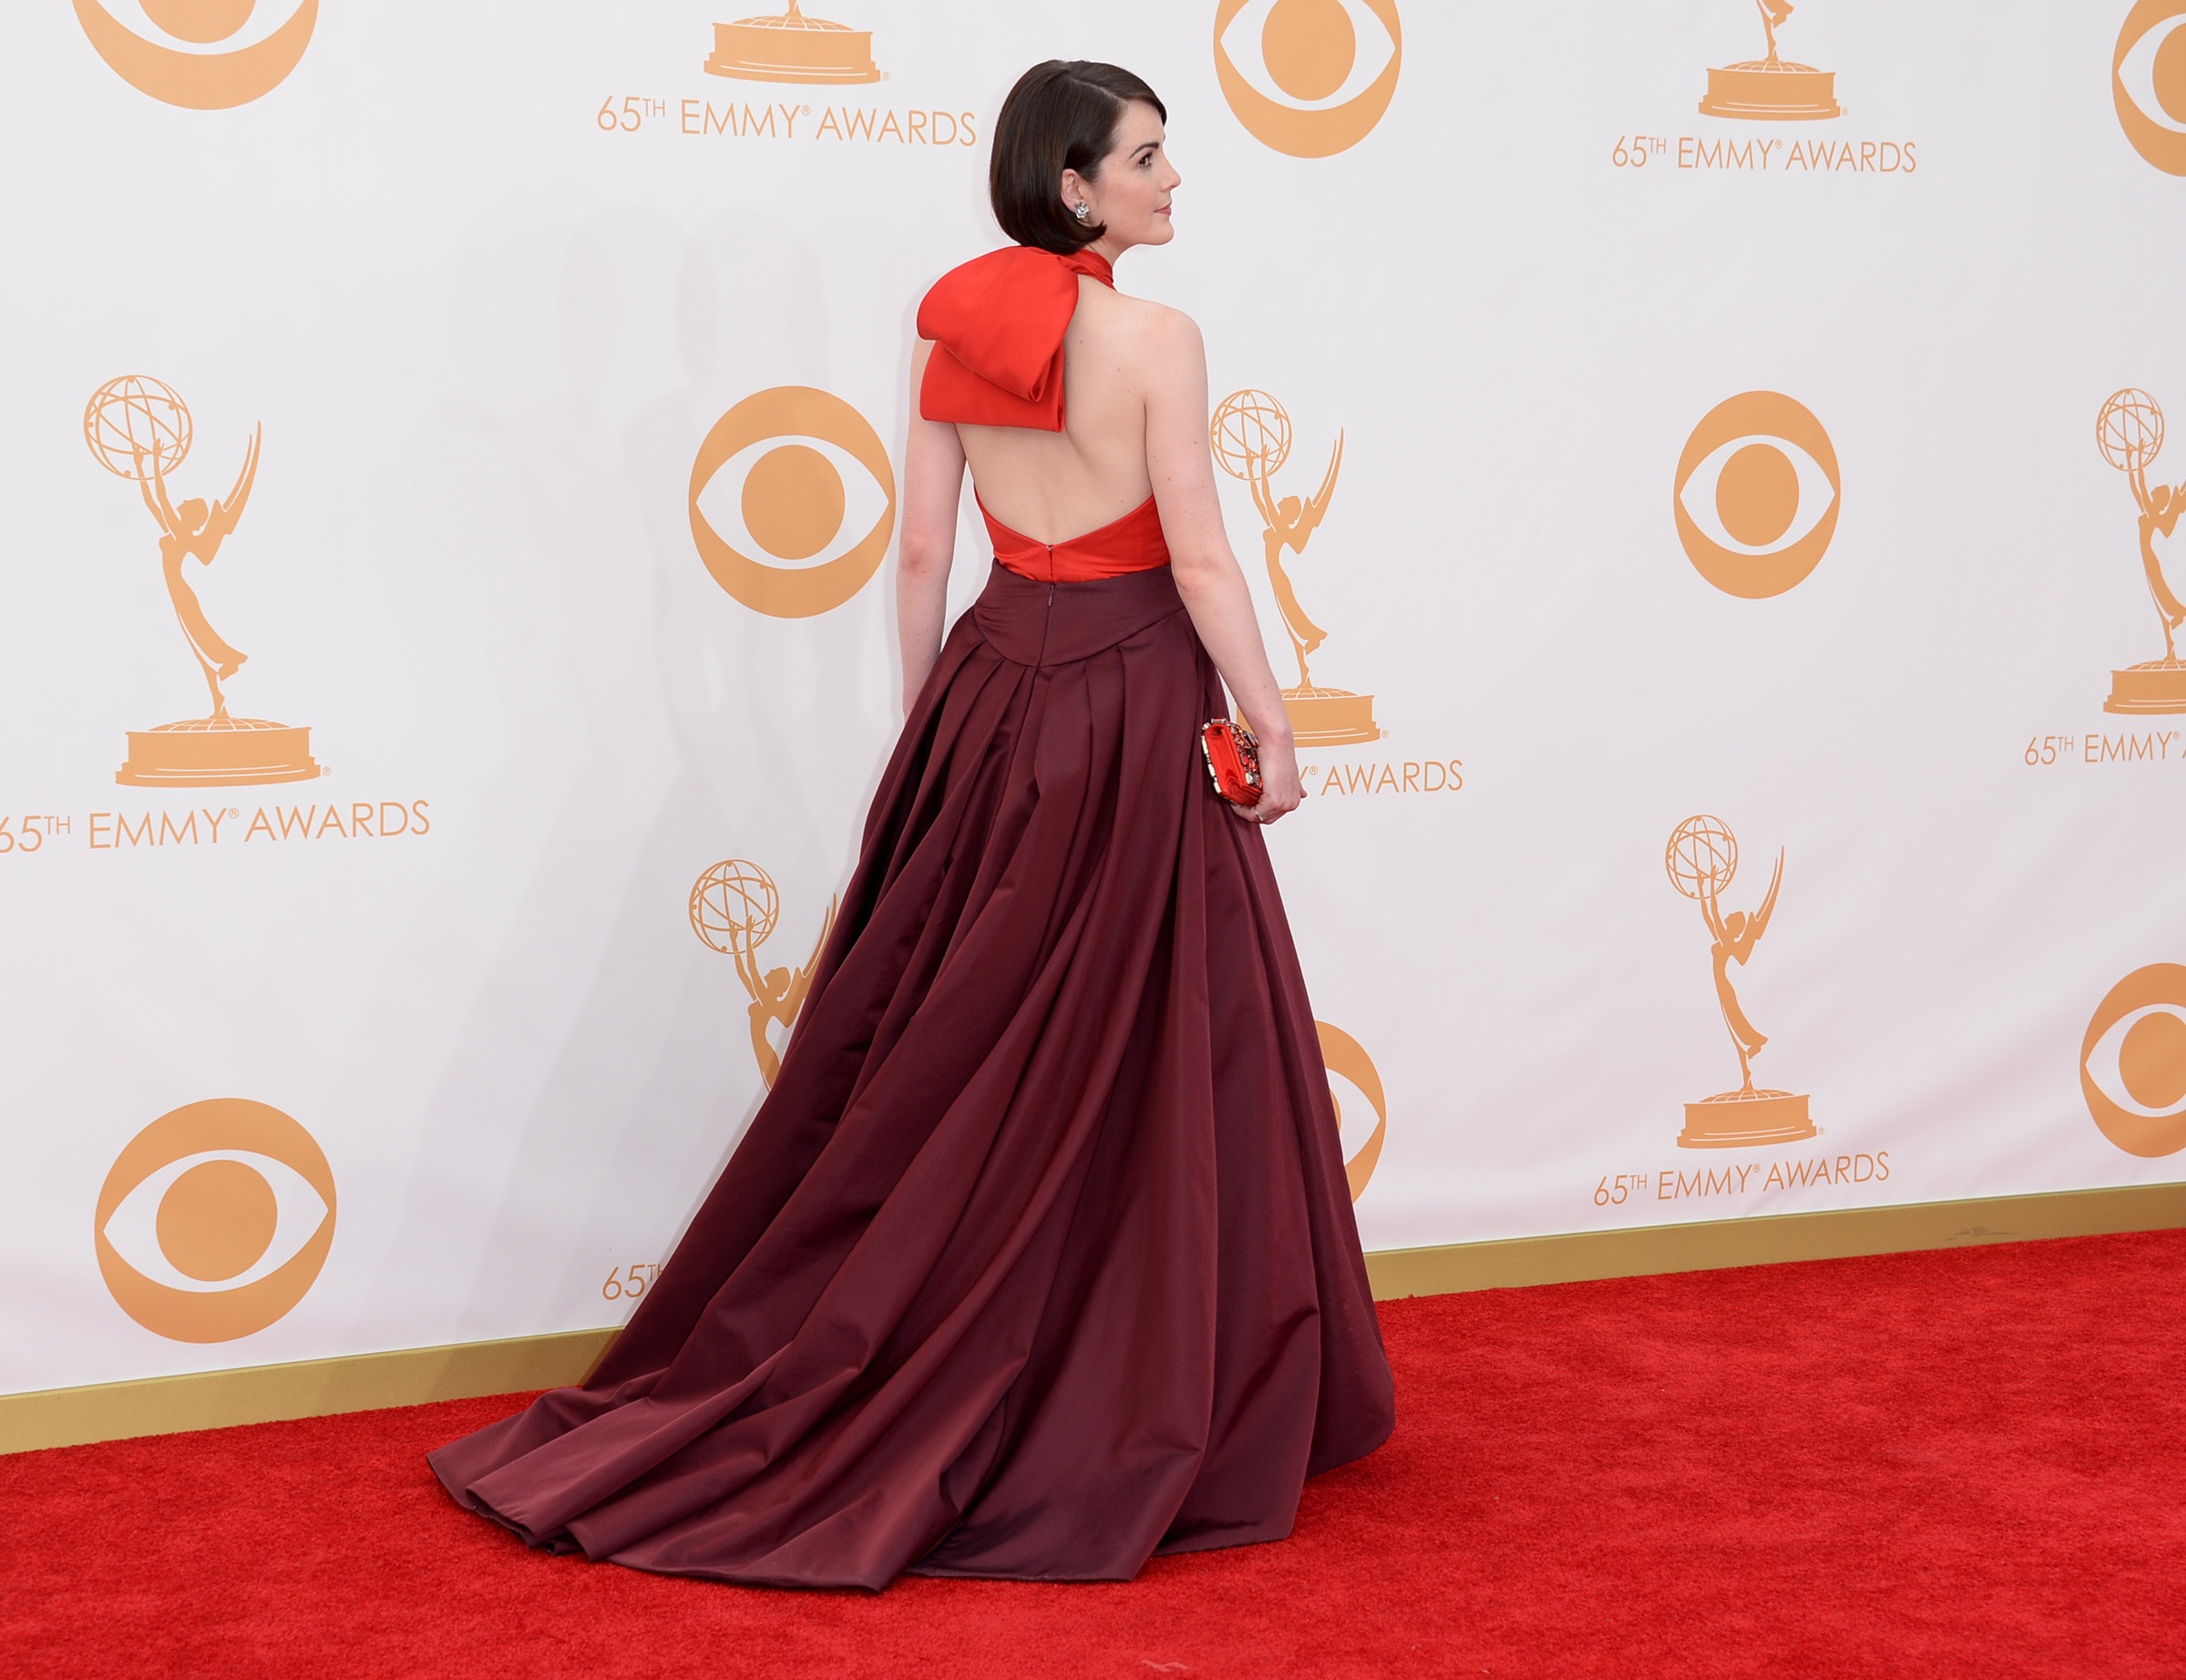 Michelle Dockery's arrival (see the front of the dress in the gallery below!) via Getty